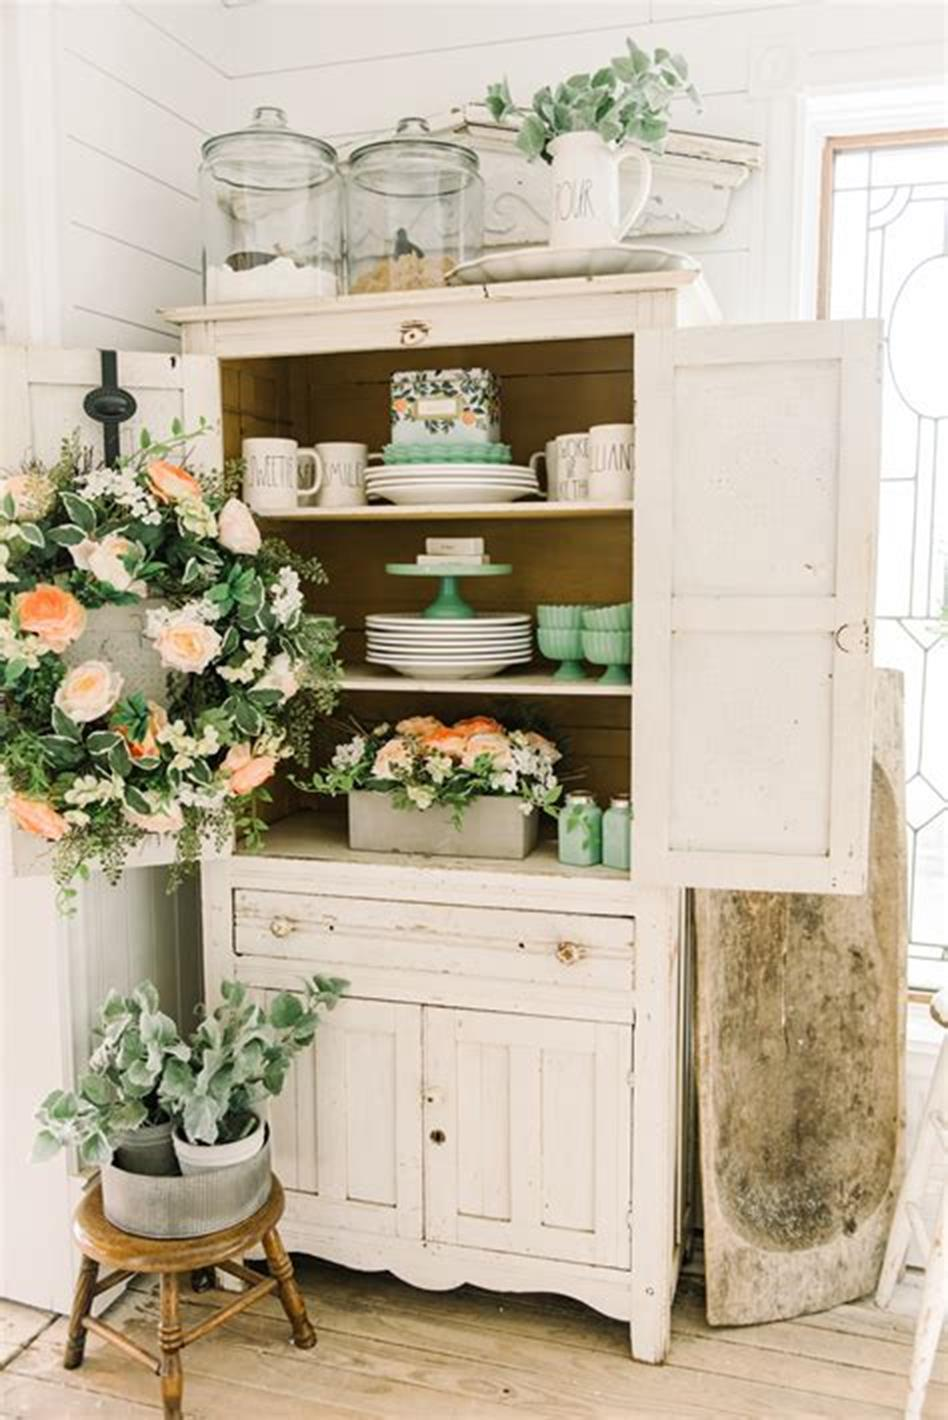 37 Beautiful Farmhouse Spring Decorating Ideas On a Budget for 2019 24